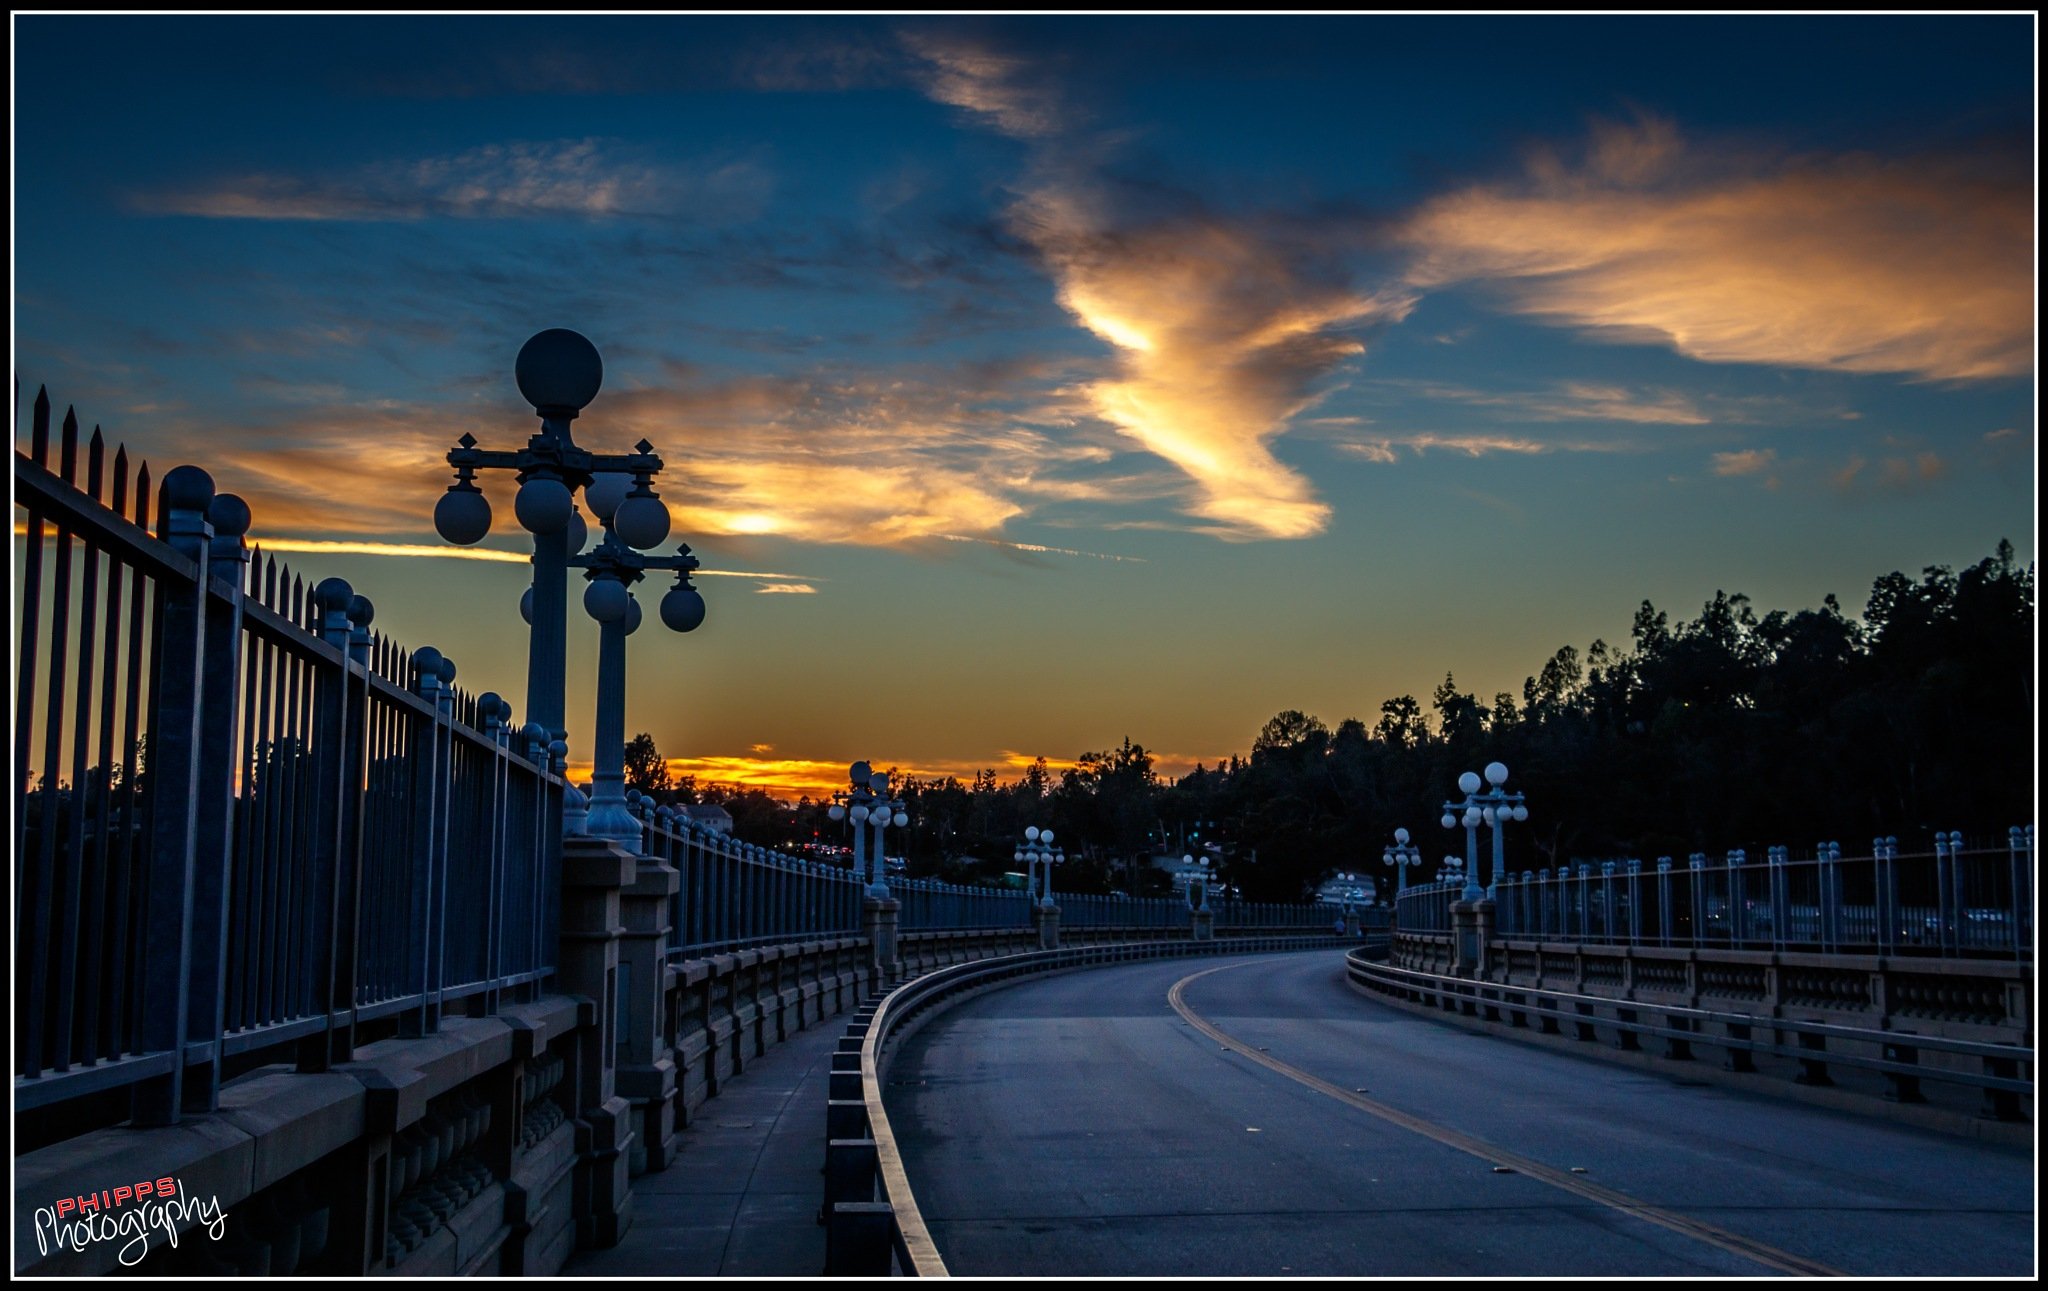 This Evening on the Old Colorado Street Bridge... by PhippsPhotography